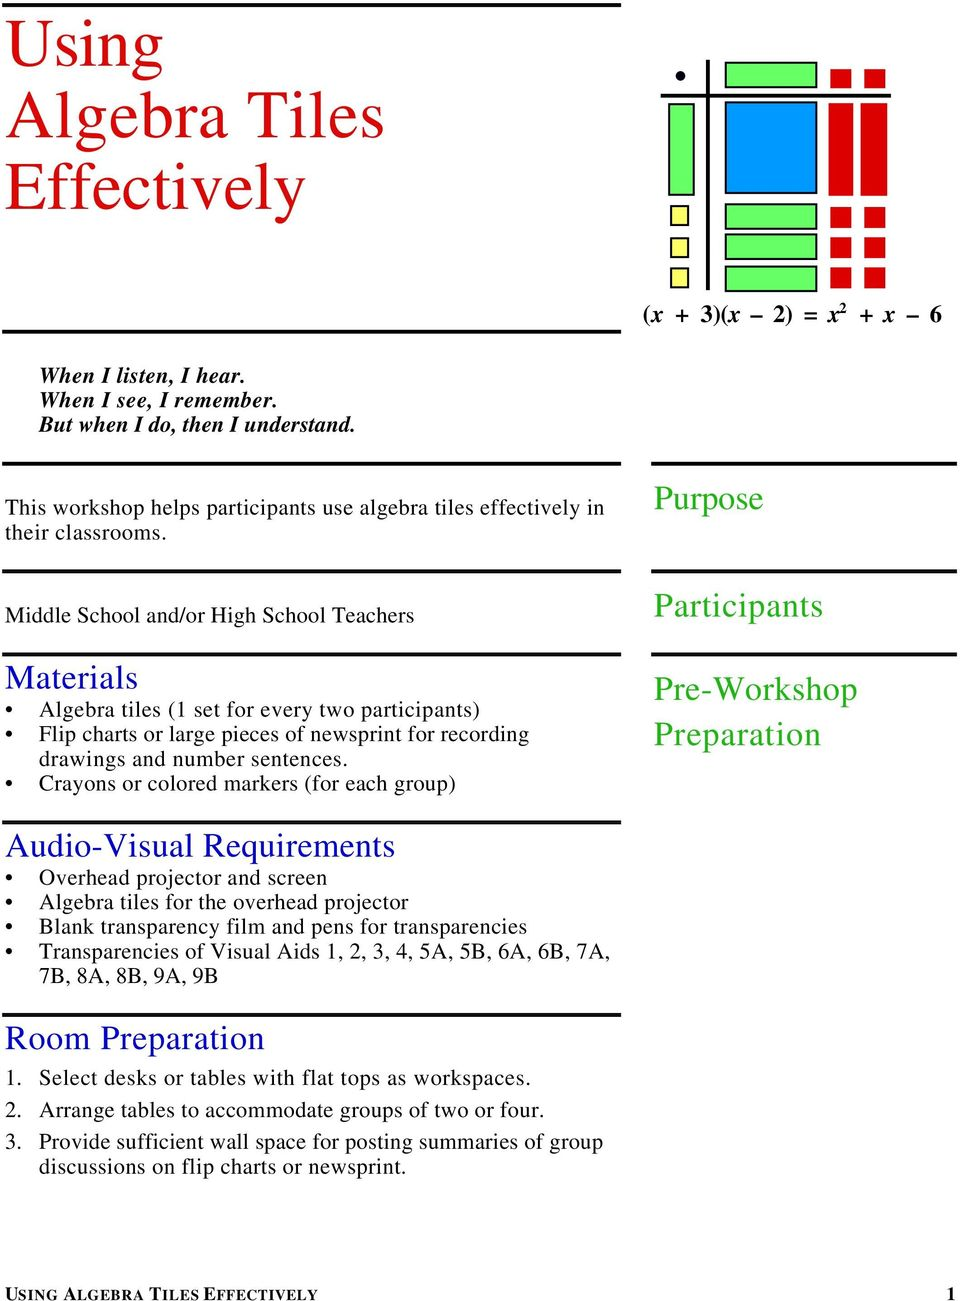 Purpose Middle School and/or High School Teachers Materials Algebra tiles (1 set for every two participants) Flip charts or large pieces of newsprint for recording drawings and number sentences.